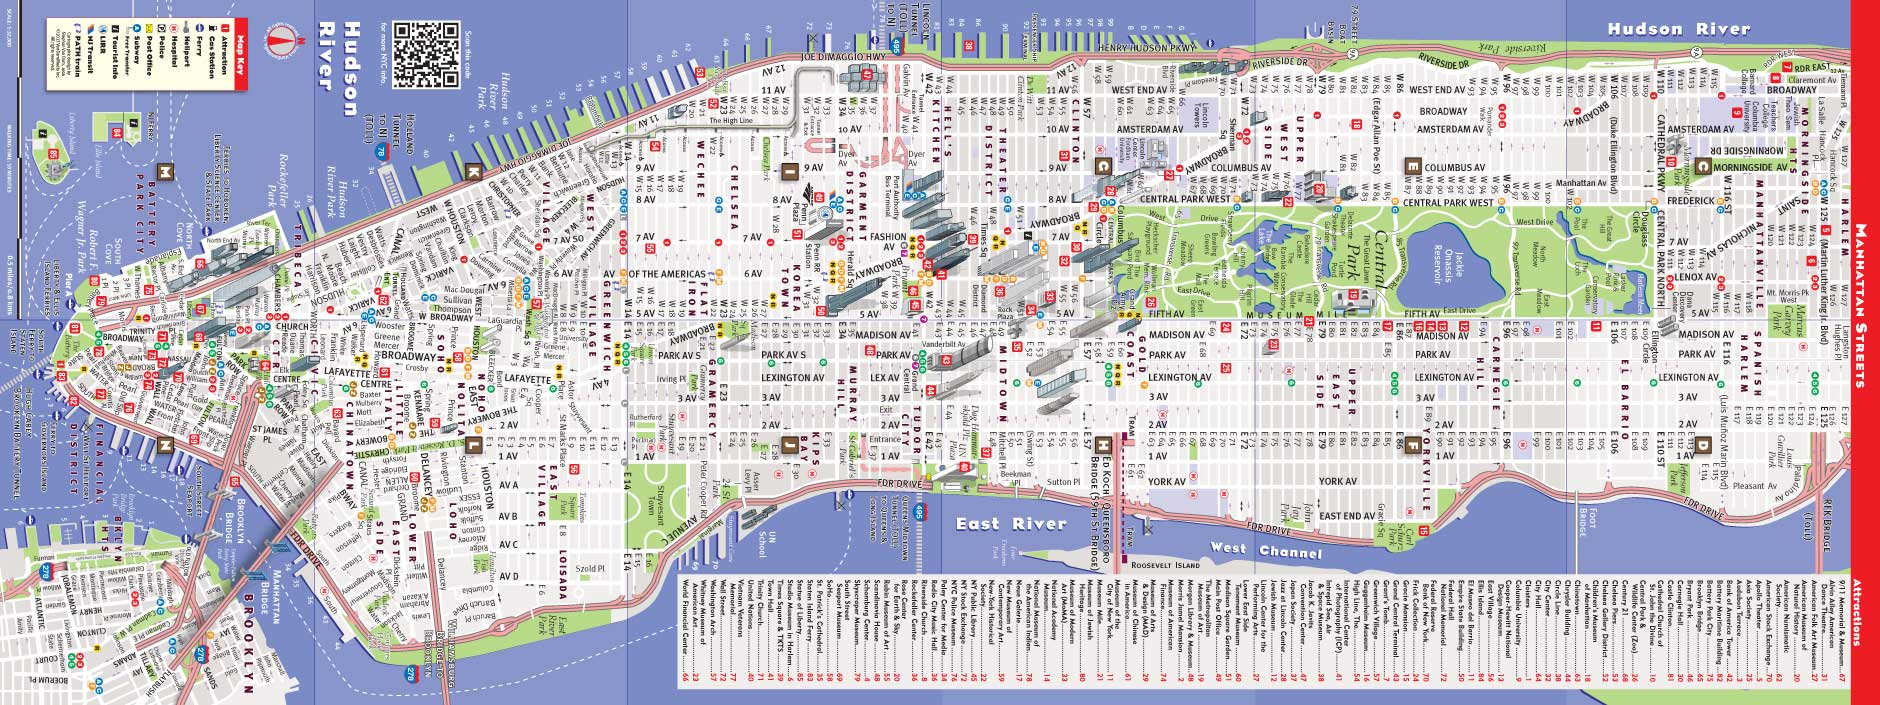 New York City Map by VanDam | NYC 9/11 StreetSmart Map | City